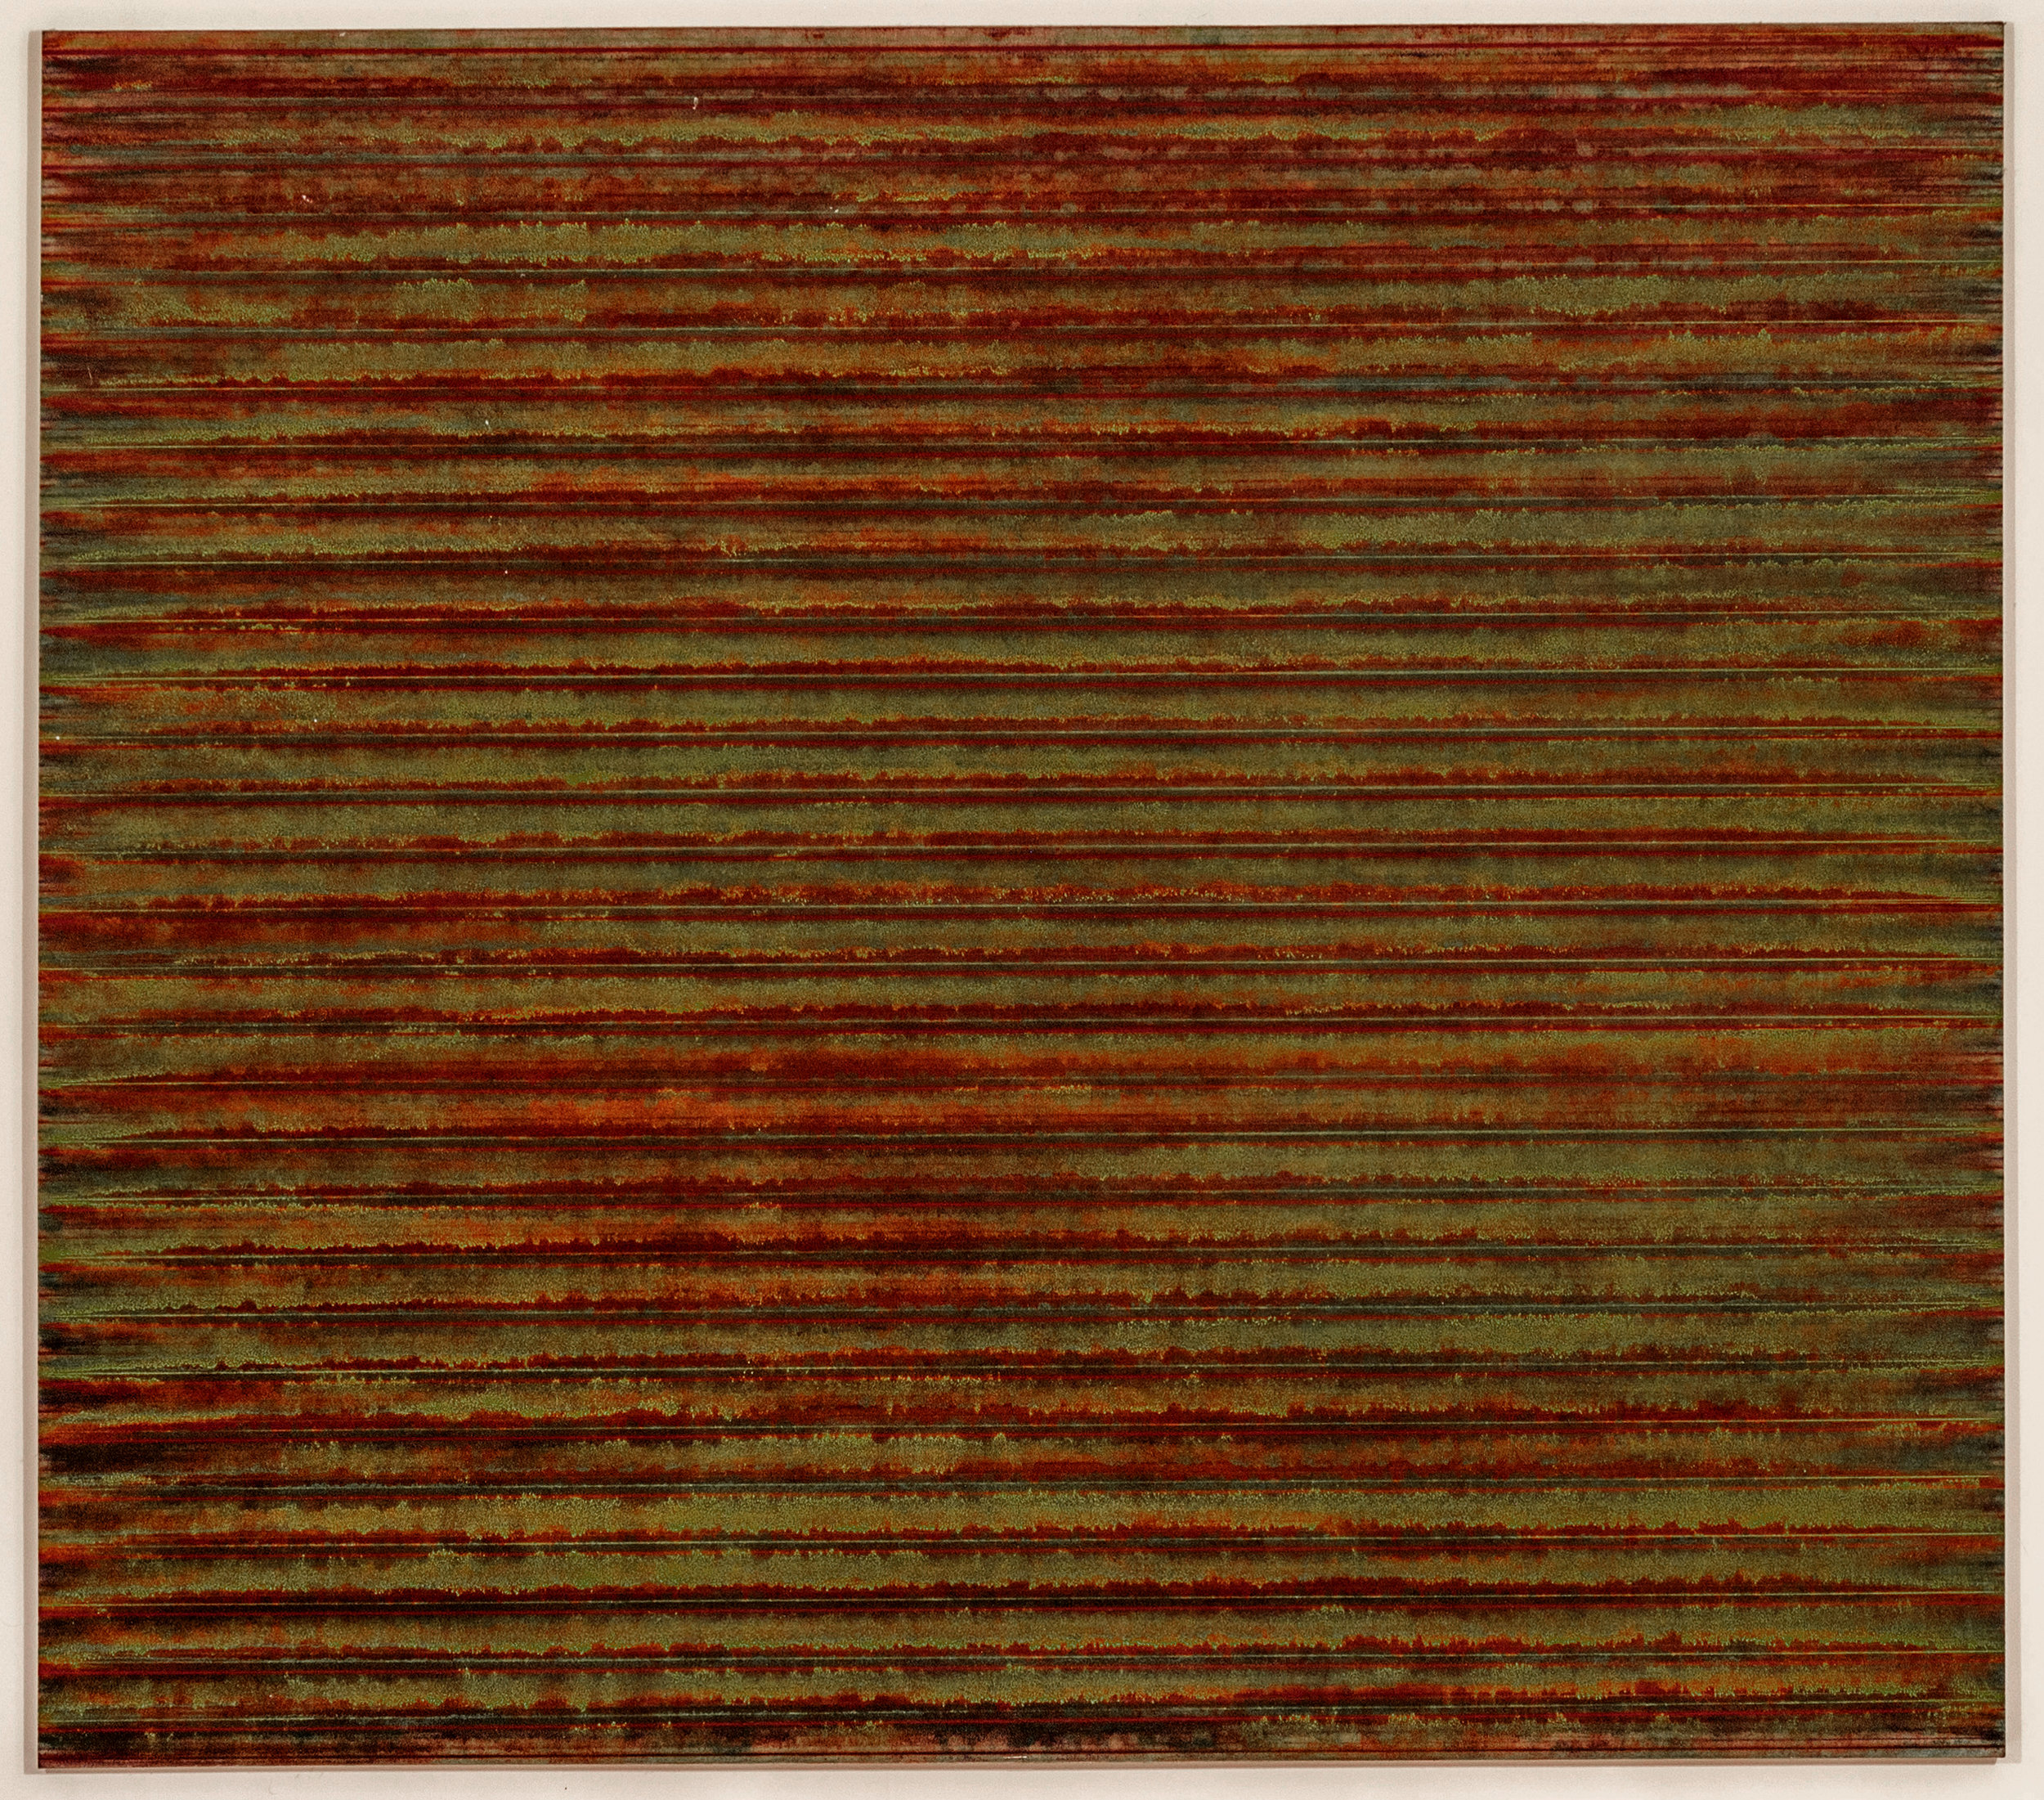 Untitled (Red & Green)